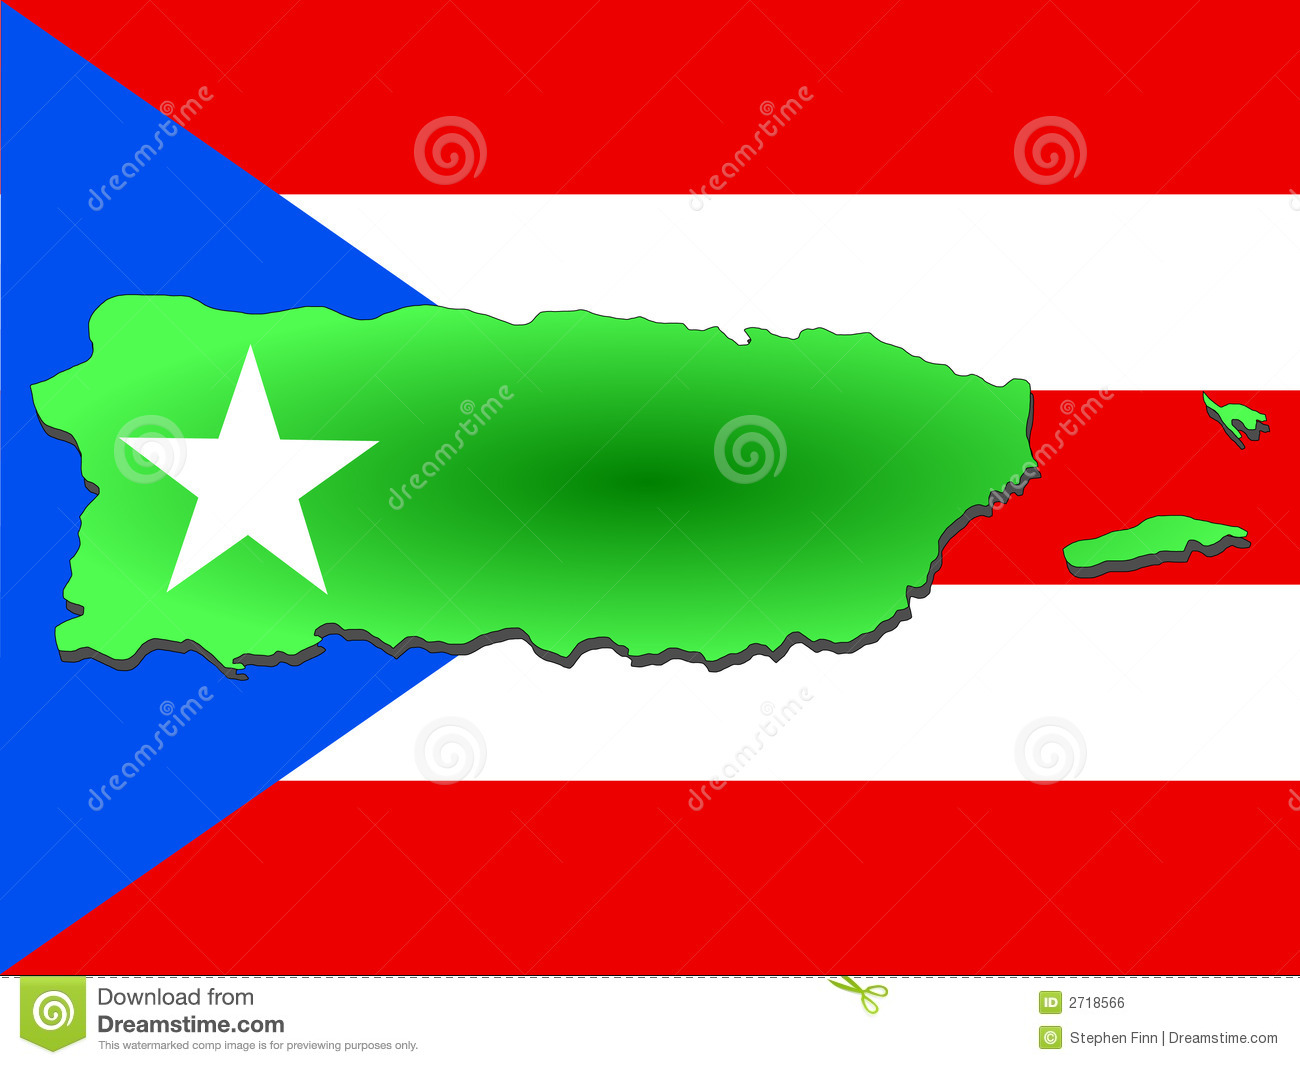 Free puerto rico clipart silougette map.